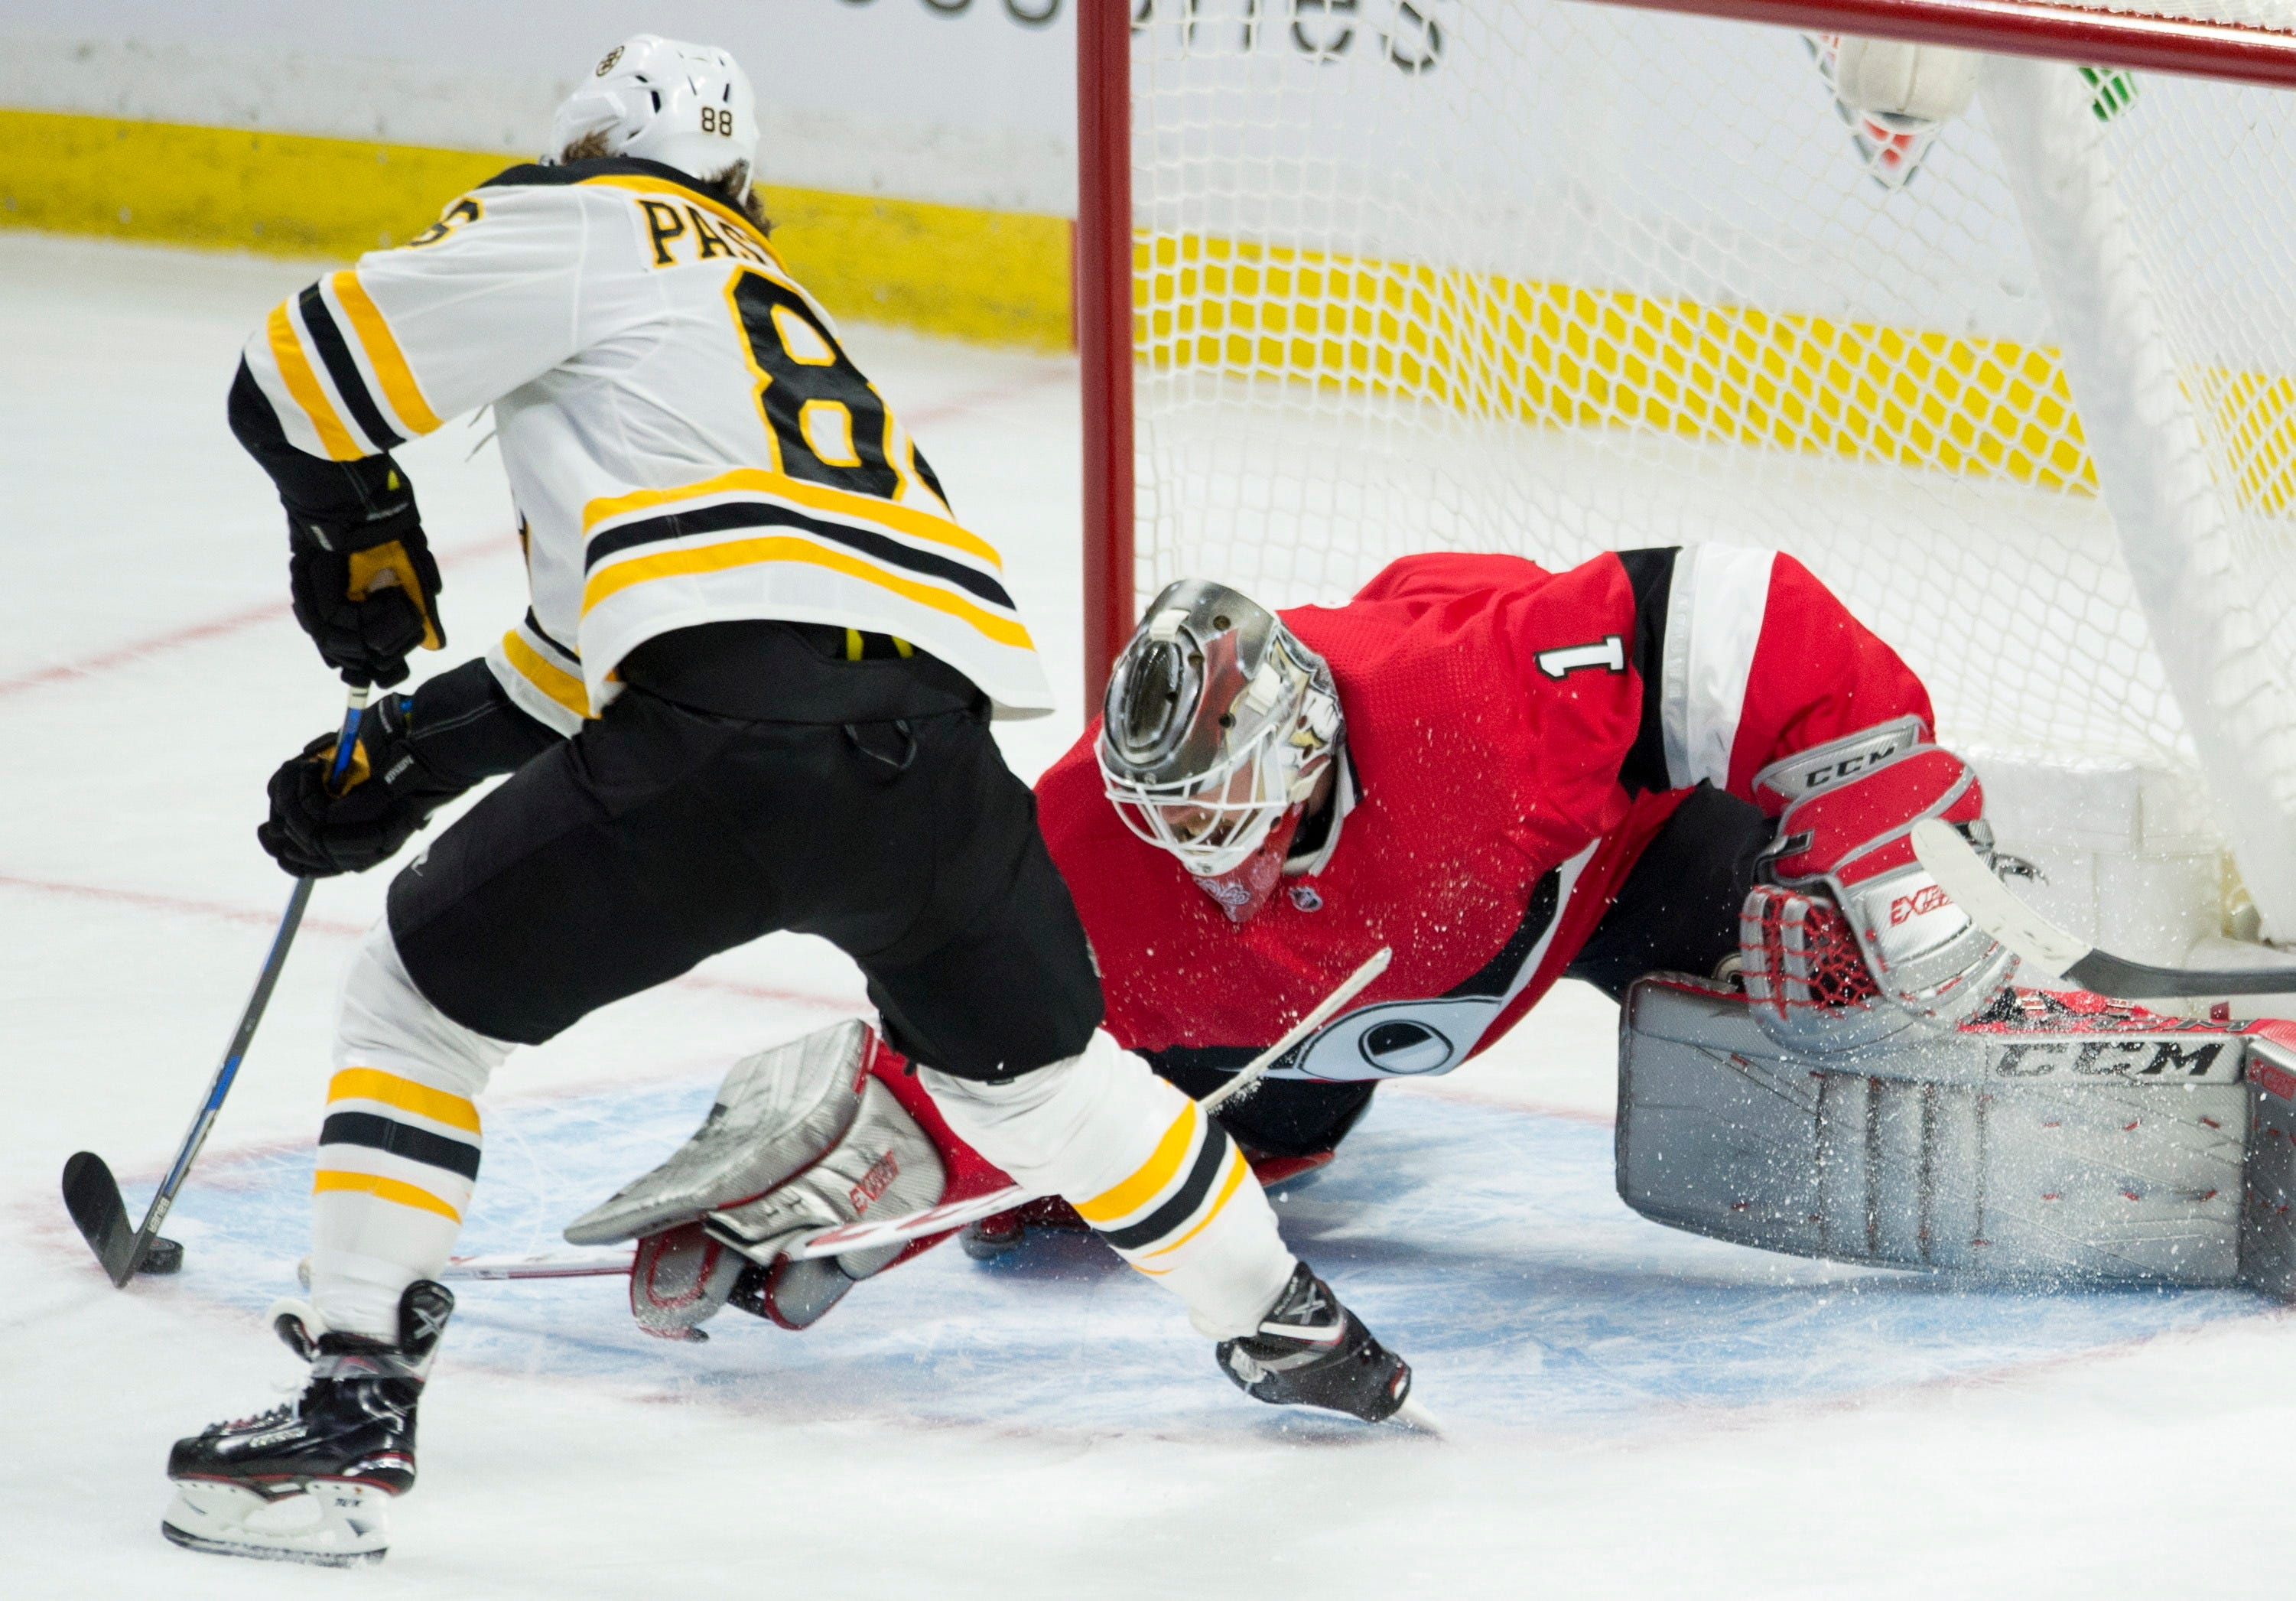 Bruins keep rolling, beat Senators for fifth straight win